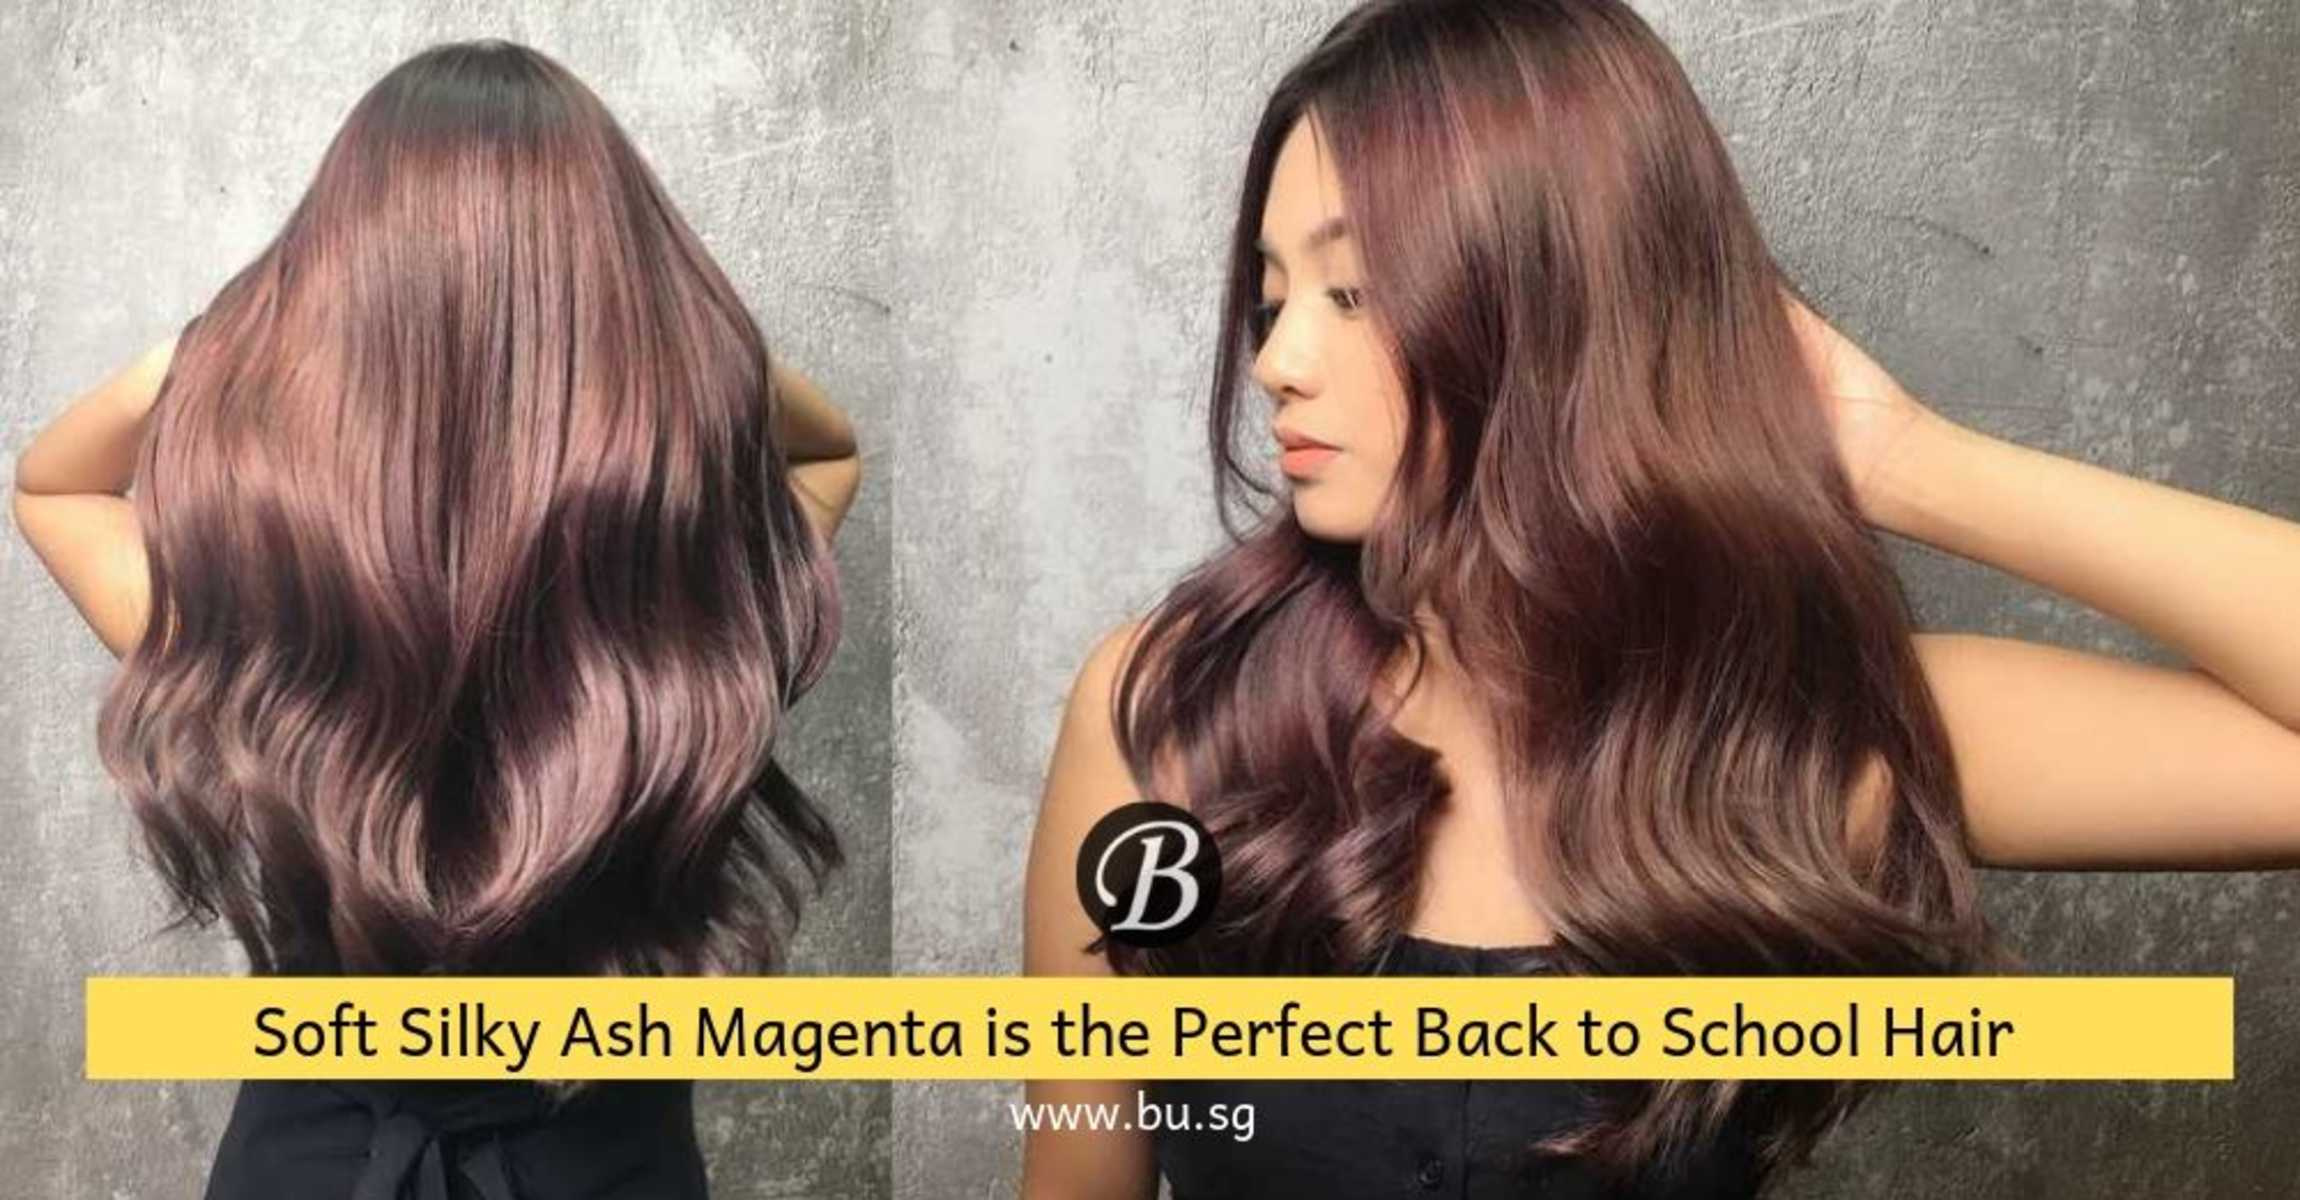 Soft Silky Ash Magenta is the Back to School Hair Your Friends Will Ooh and Aah About